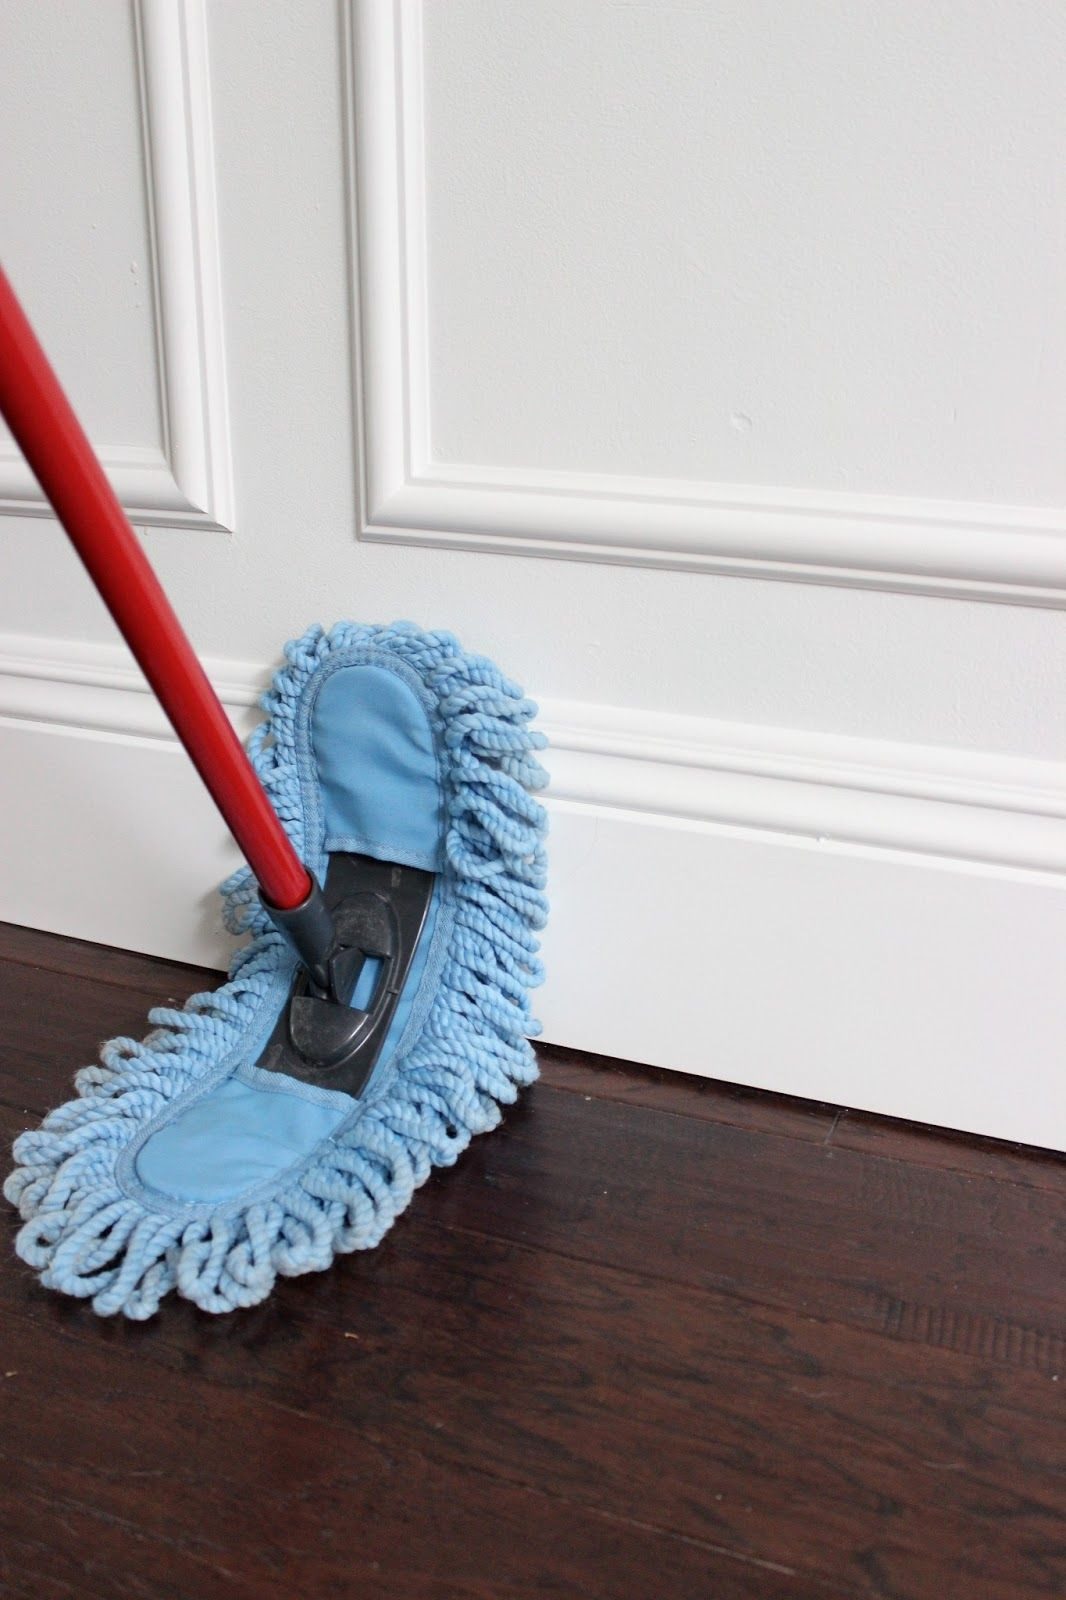 How to Use Bona Hardwood Floor Mop Of Large Dust Mop for Hardwood Floors Http Glblcom Com Pinterest Pertaining to Large Dust Mop for Hardwood Floors